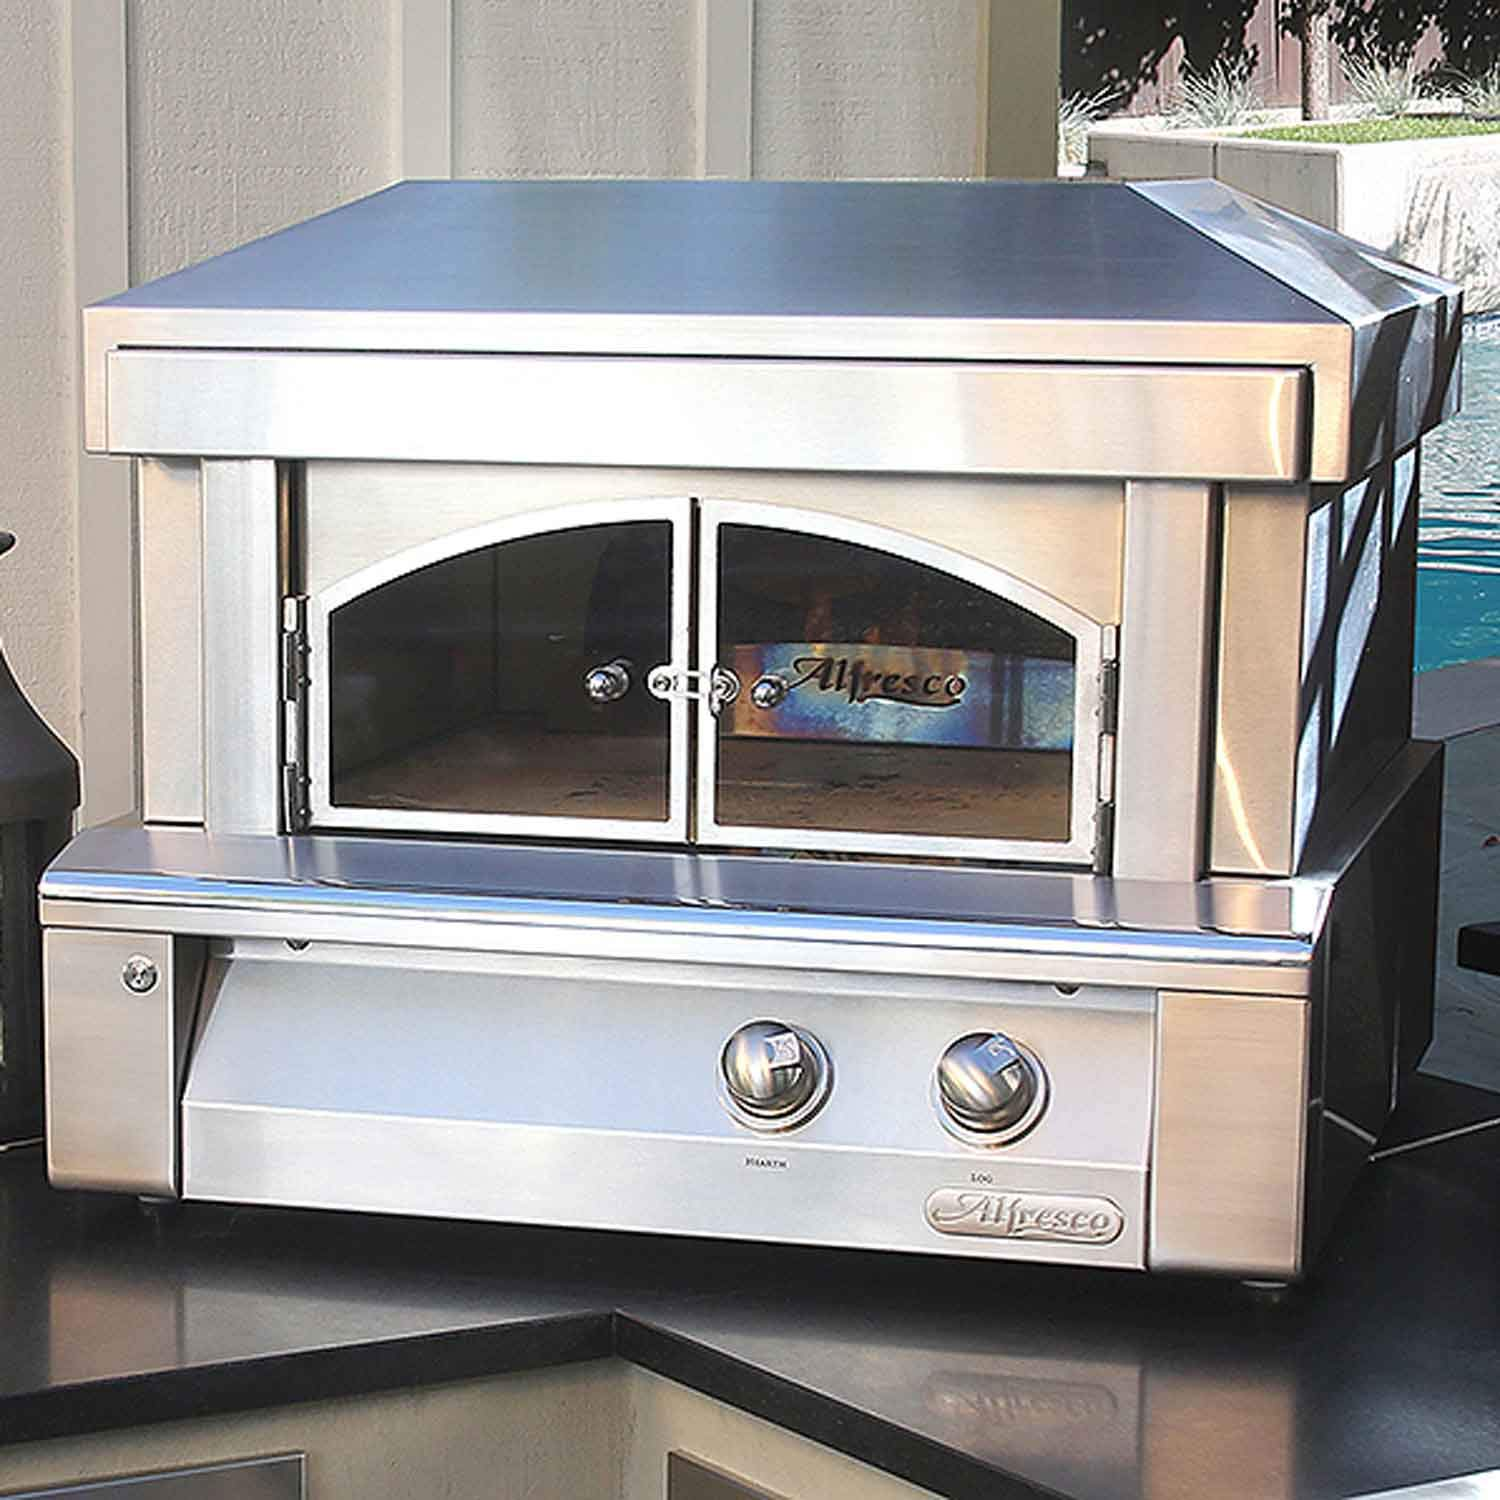 Alfresco Built-in Pizza Oven